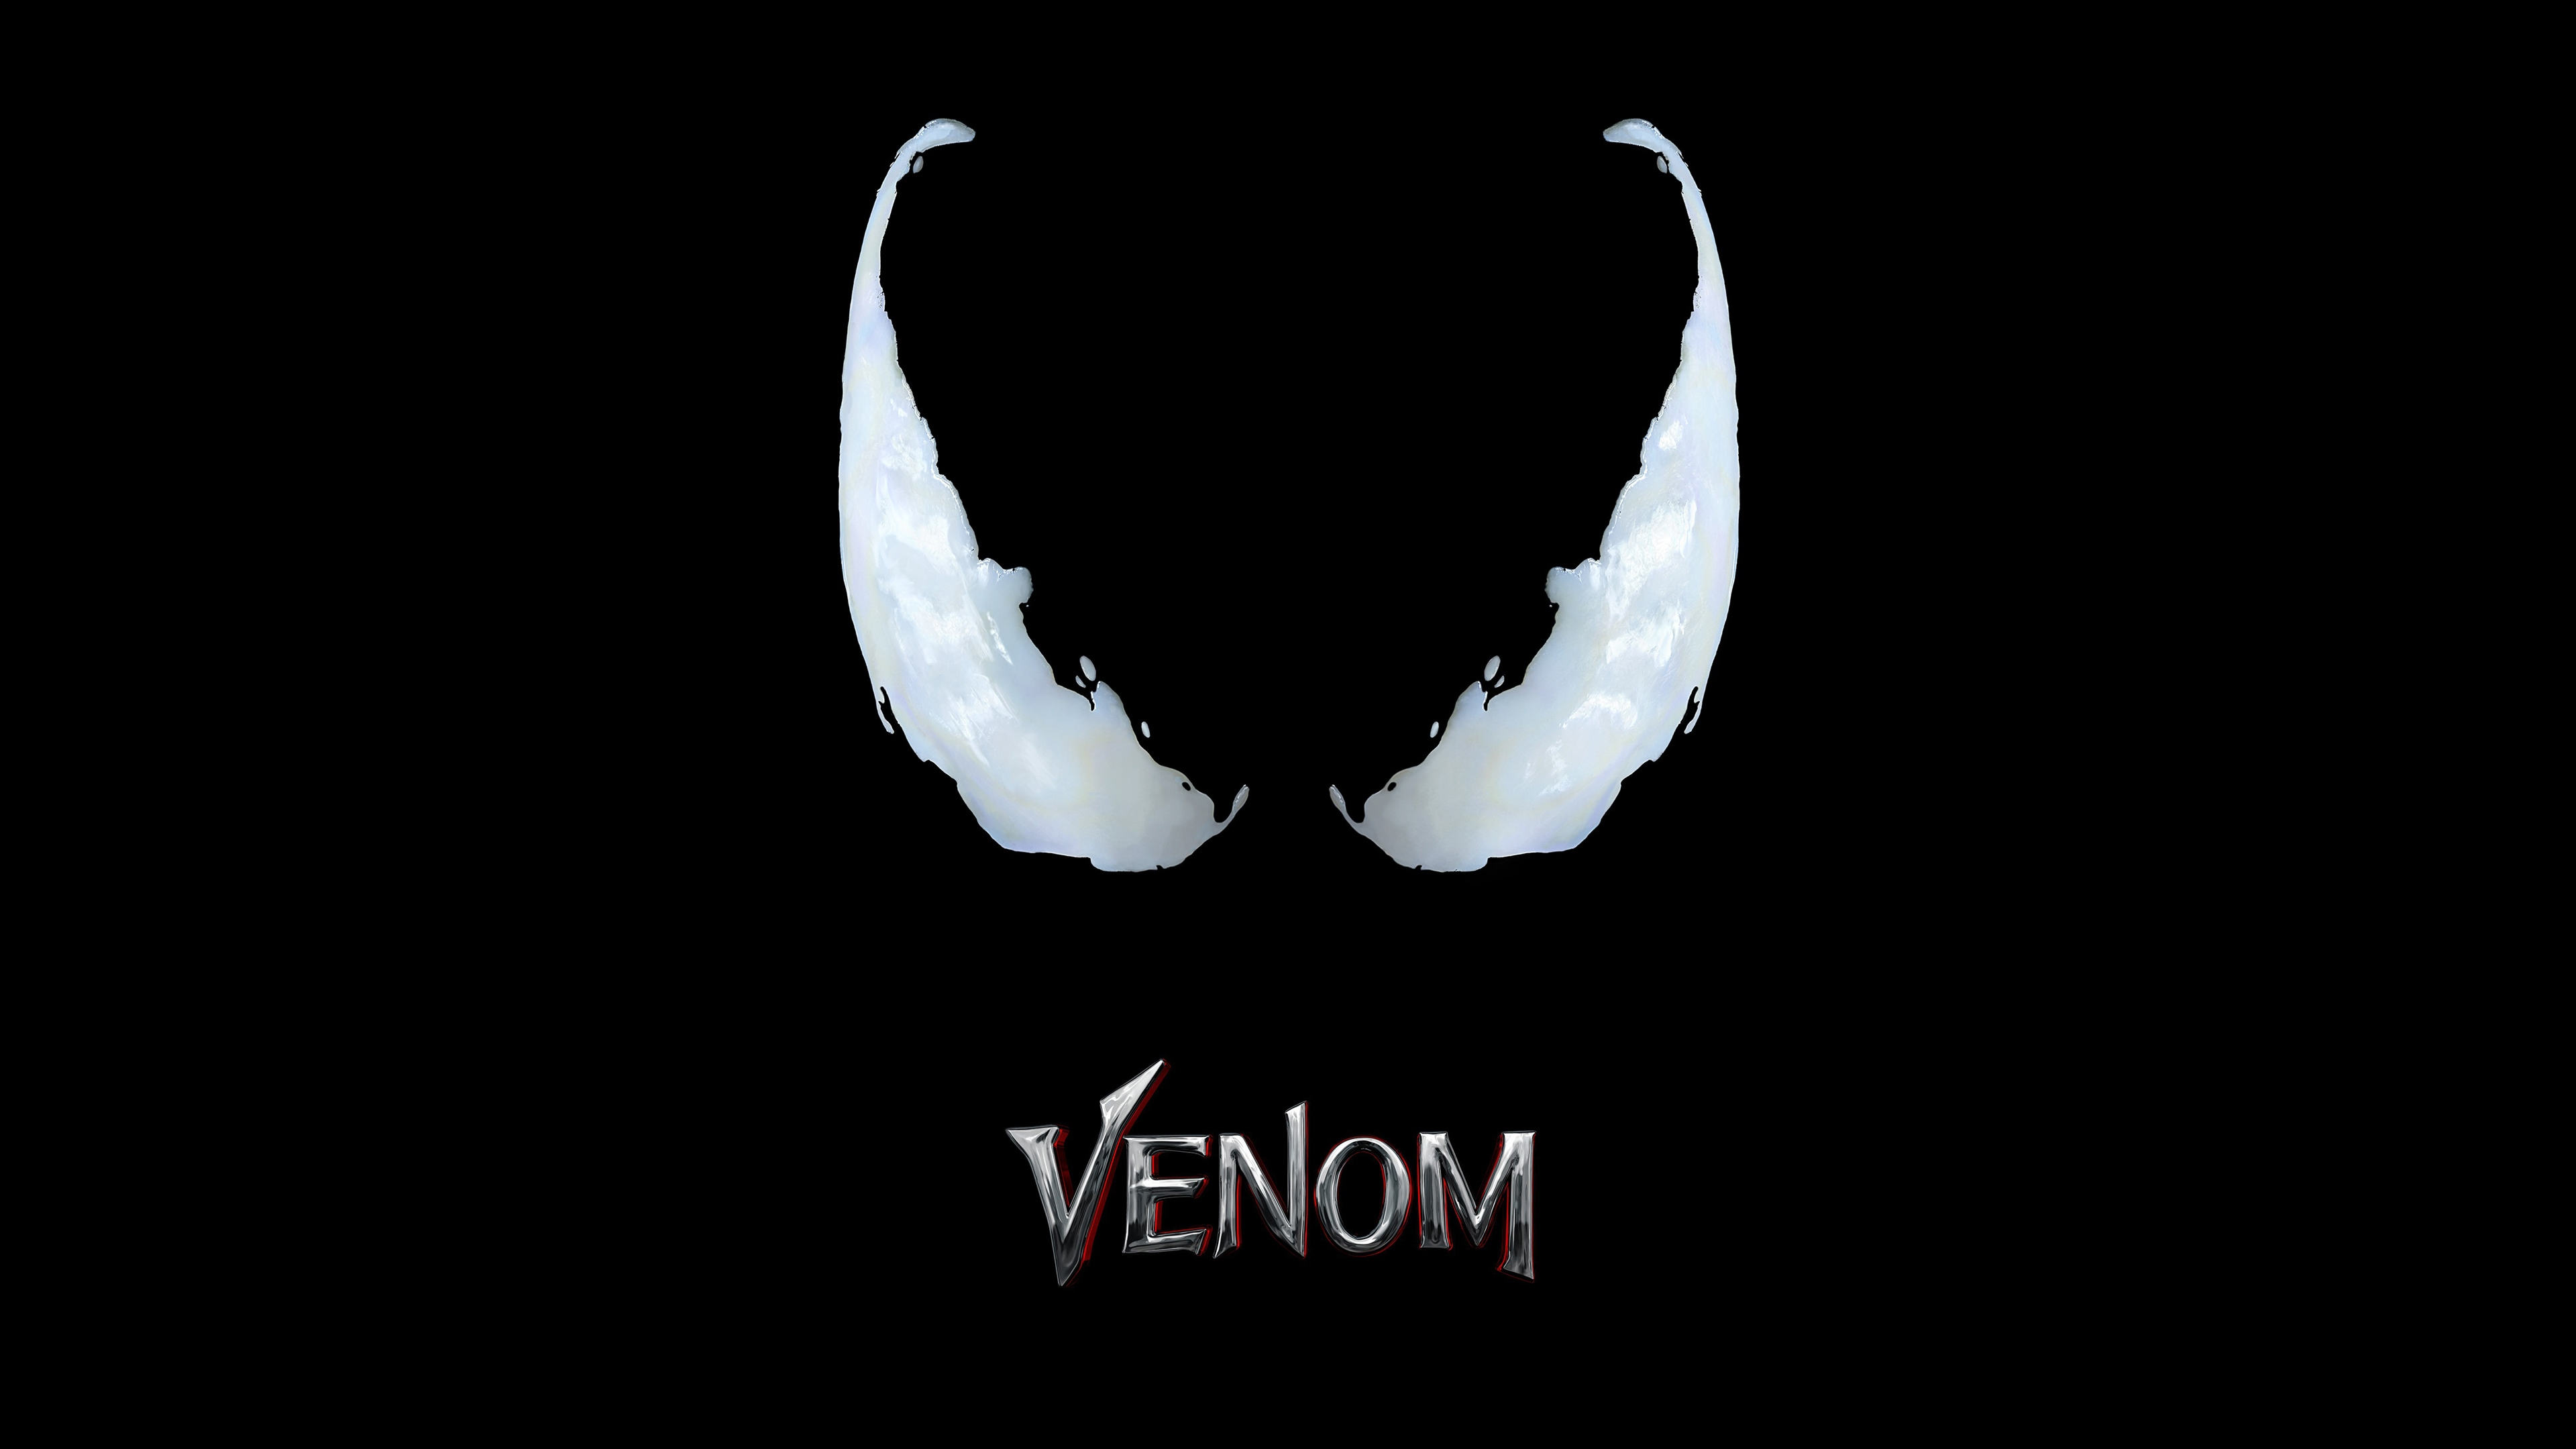 Cute K On Wallpaper 1360x768 Venom Movie Logo 4k Laptop Hd Hd 4k Wallpapers